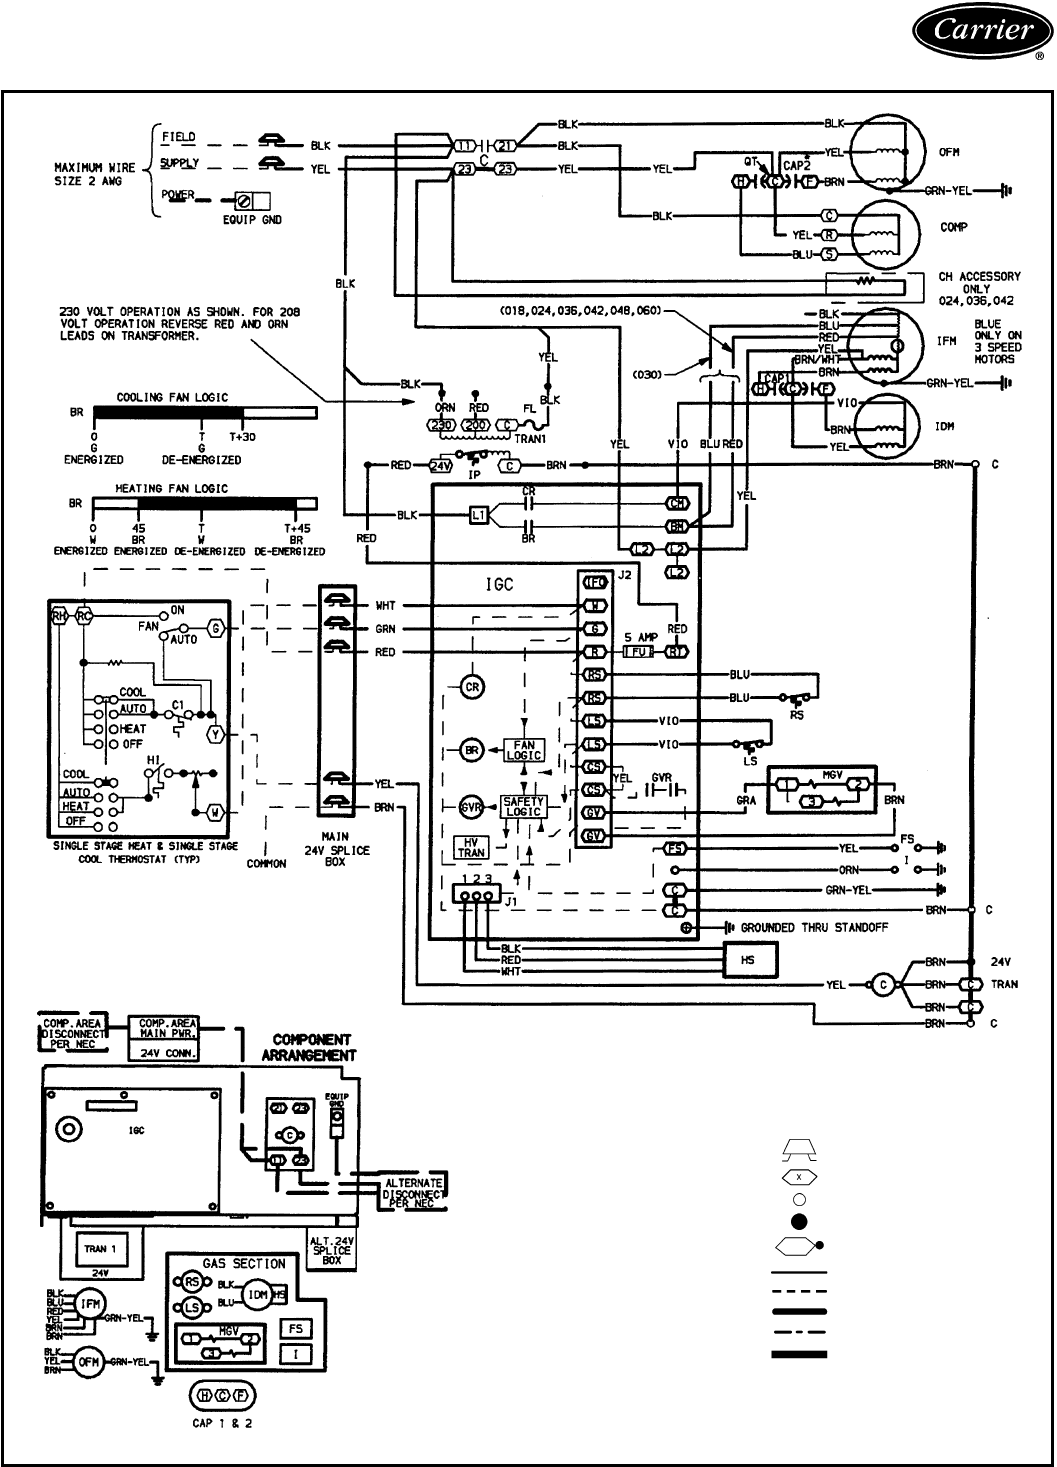 595e8aca 1cba 4ce6 ac3f ef414be0010d bg15 page 21 of carrier gas heater 48ss user guide manualsonline com Millivolt Gas Valve Troubleshooting at n-0.co